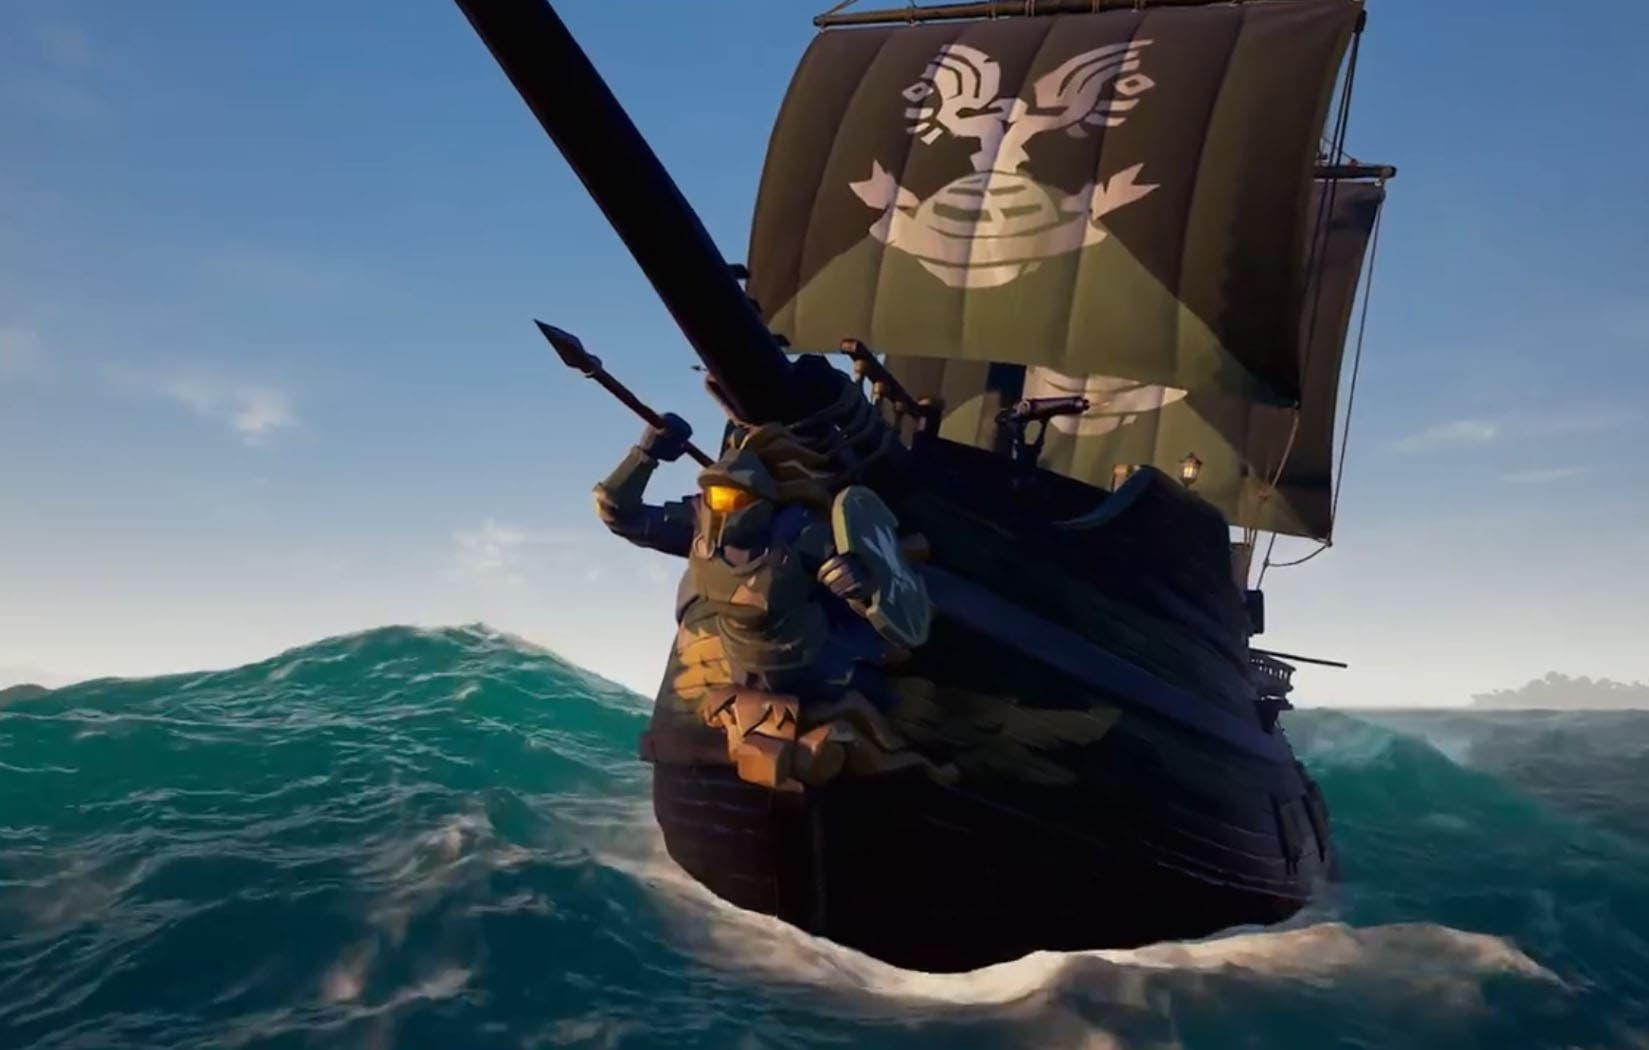 Sea of Thieves anticipa la llegada de actualizaciones por temporadas con Plunder Pass 2